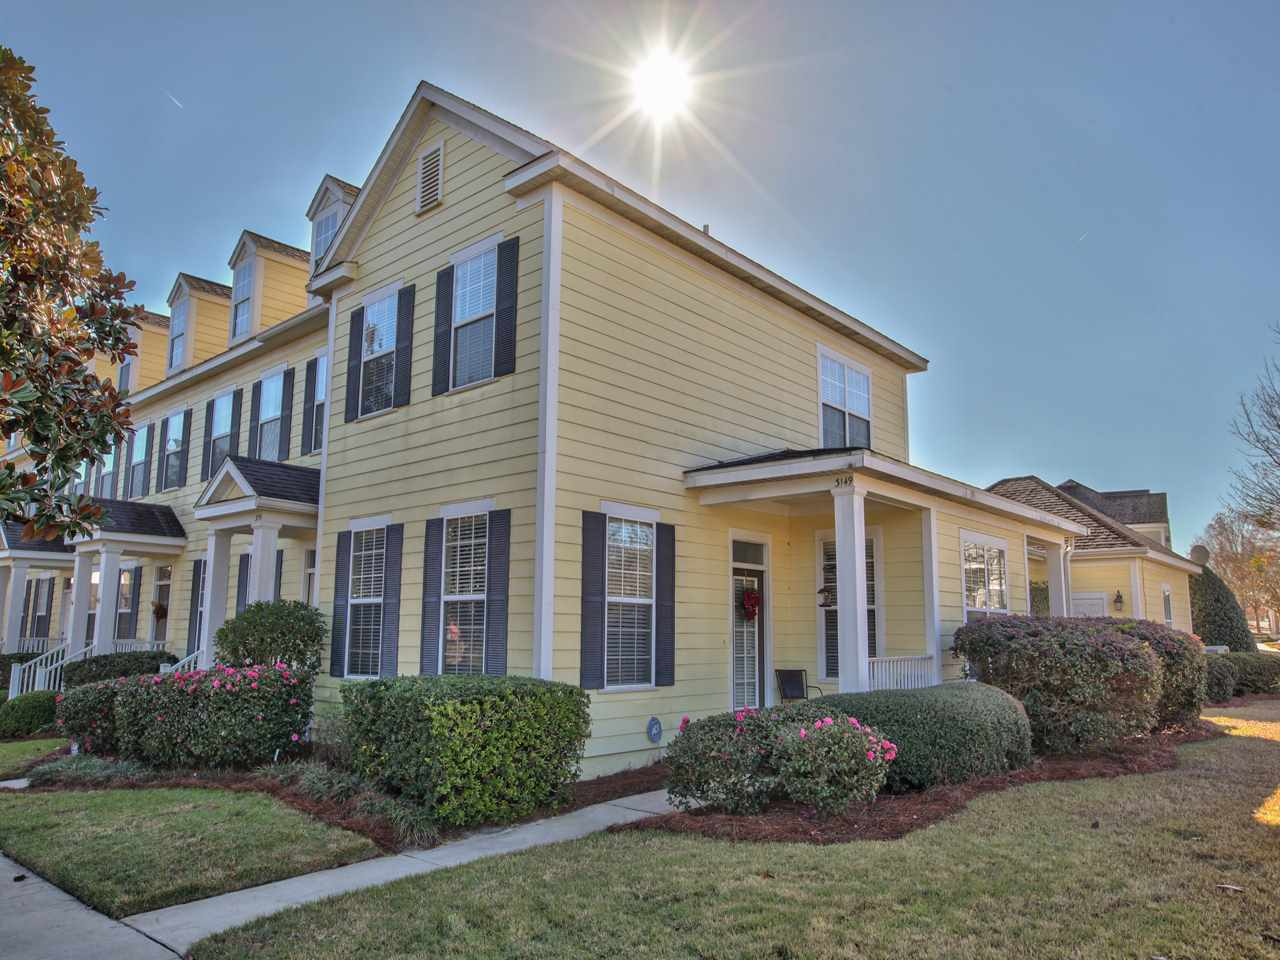 3149 mulberry park court, tallahassee, fl 32311 beycome